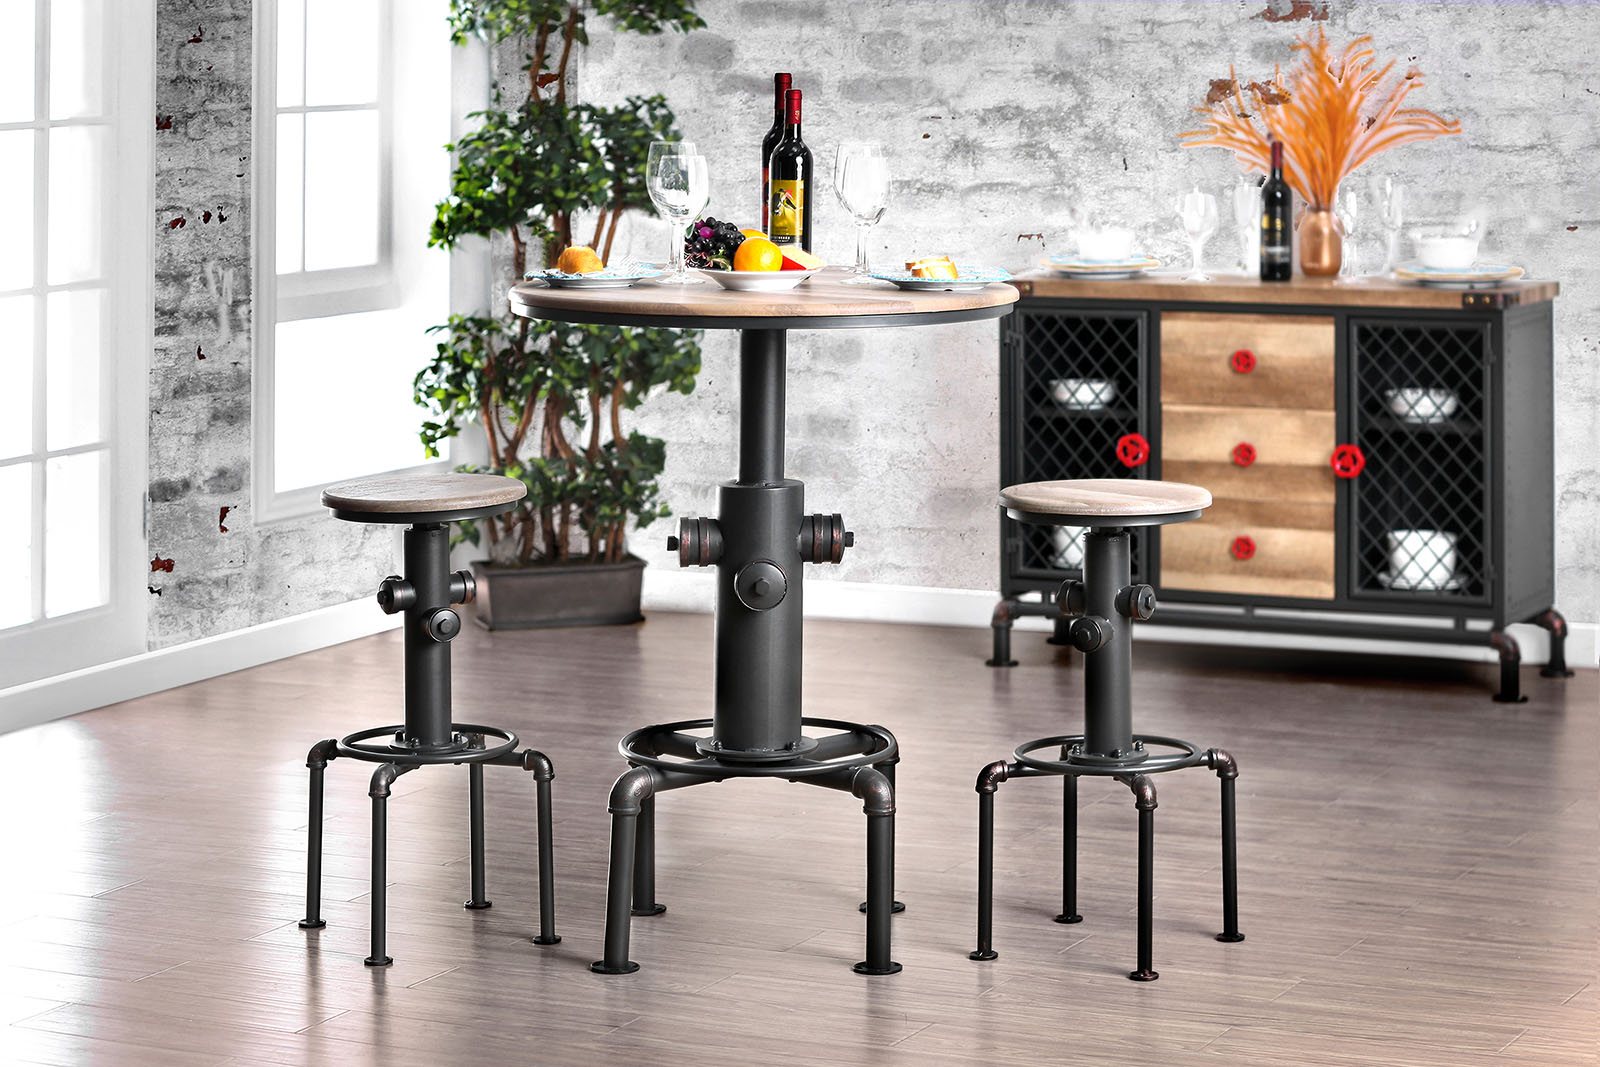 Foskey Industrial Collection Las Vegas Furniture Store Modern Home Furniture Cornerstone